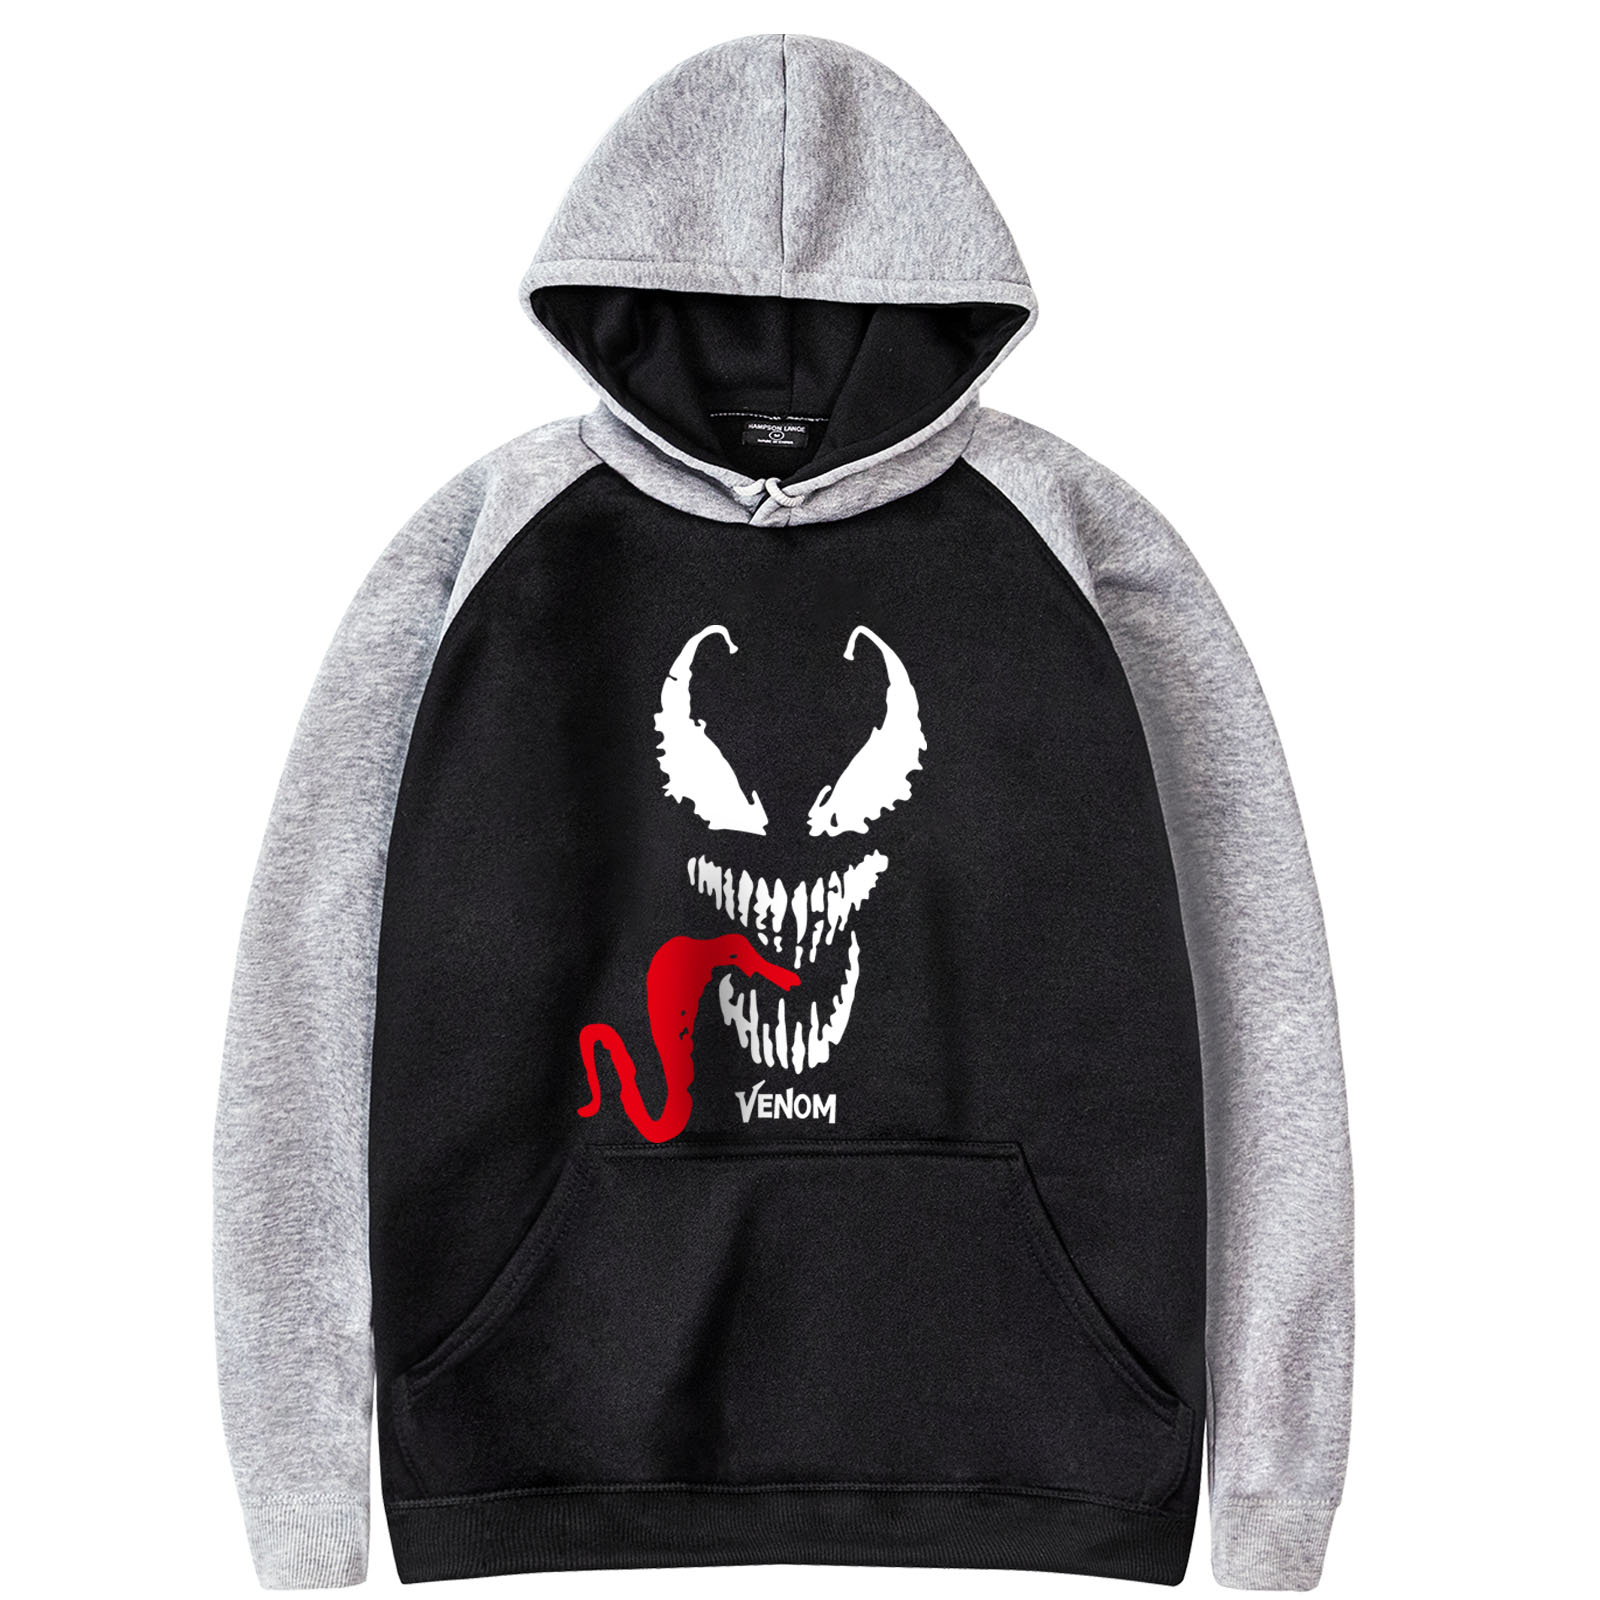 Venom Fashion Printed 2019 Spring Hot Selling Man Sportswear Harajuku Top Rock Tracksuit Young New Arrival Raglan Hoodies Tops